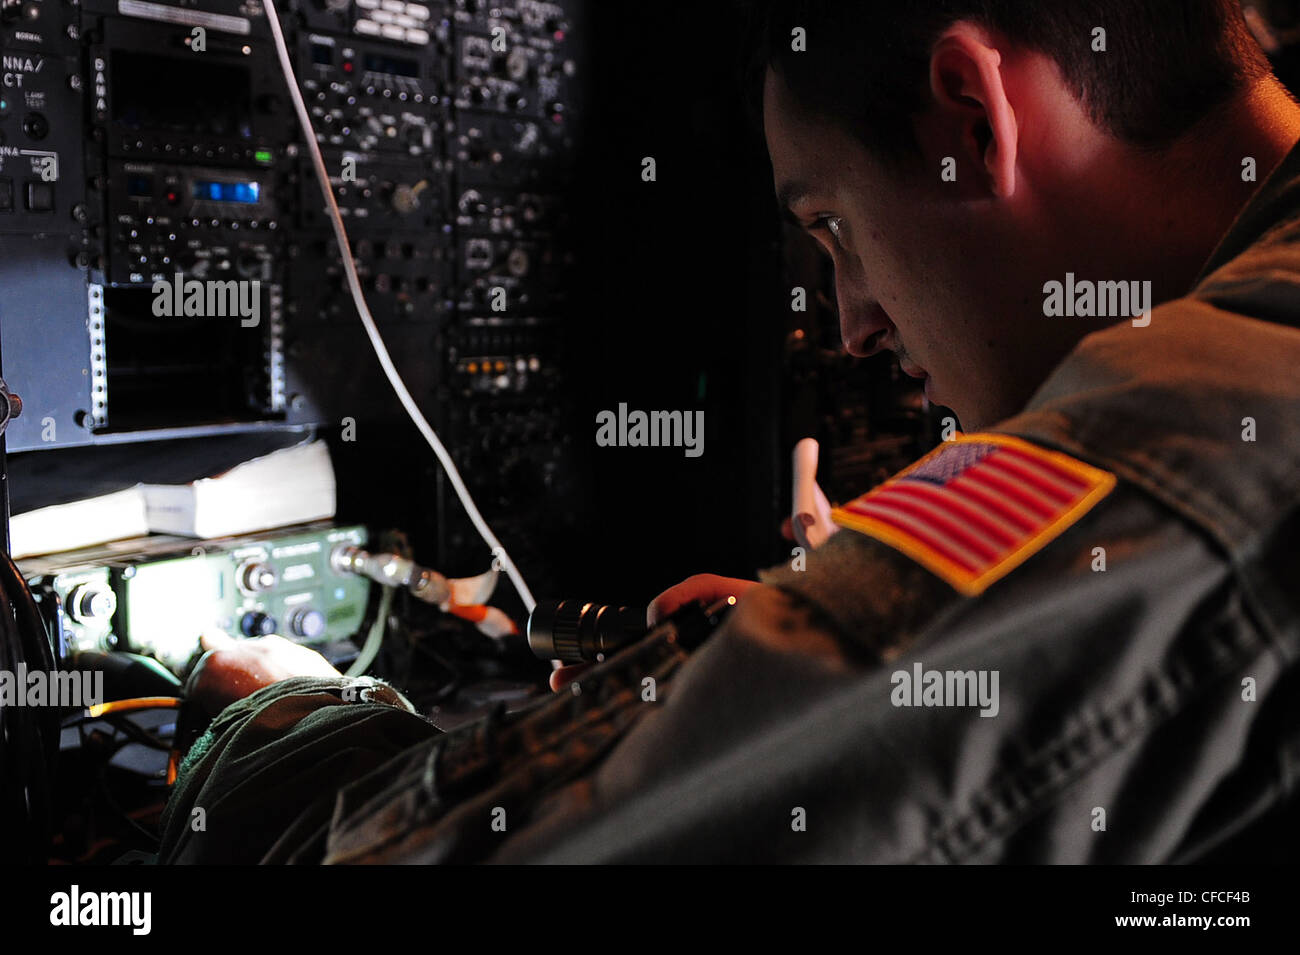 A U.S. Air Force aerial communications engineer programs a radio aboard an MC-130E aircraft prior to a mission during - Stock Image